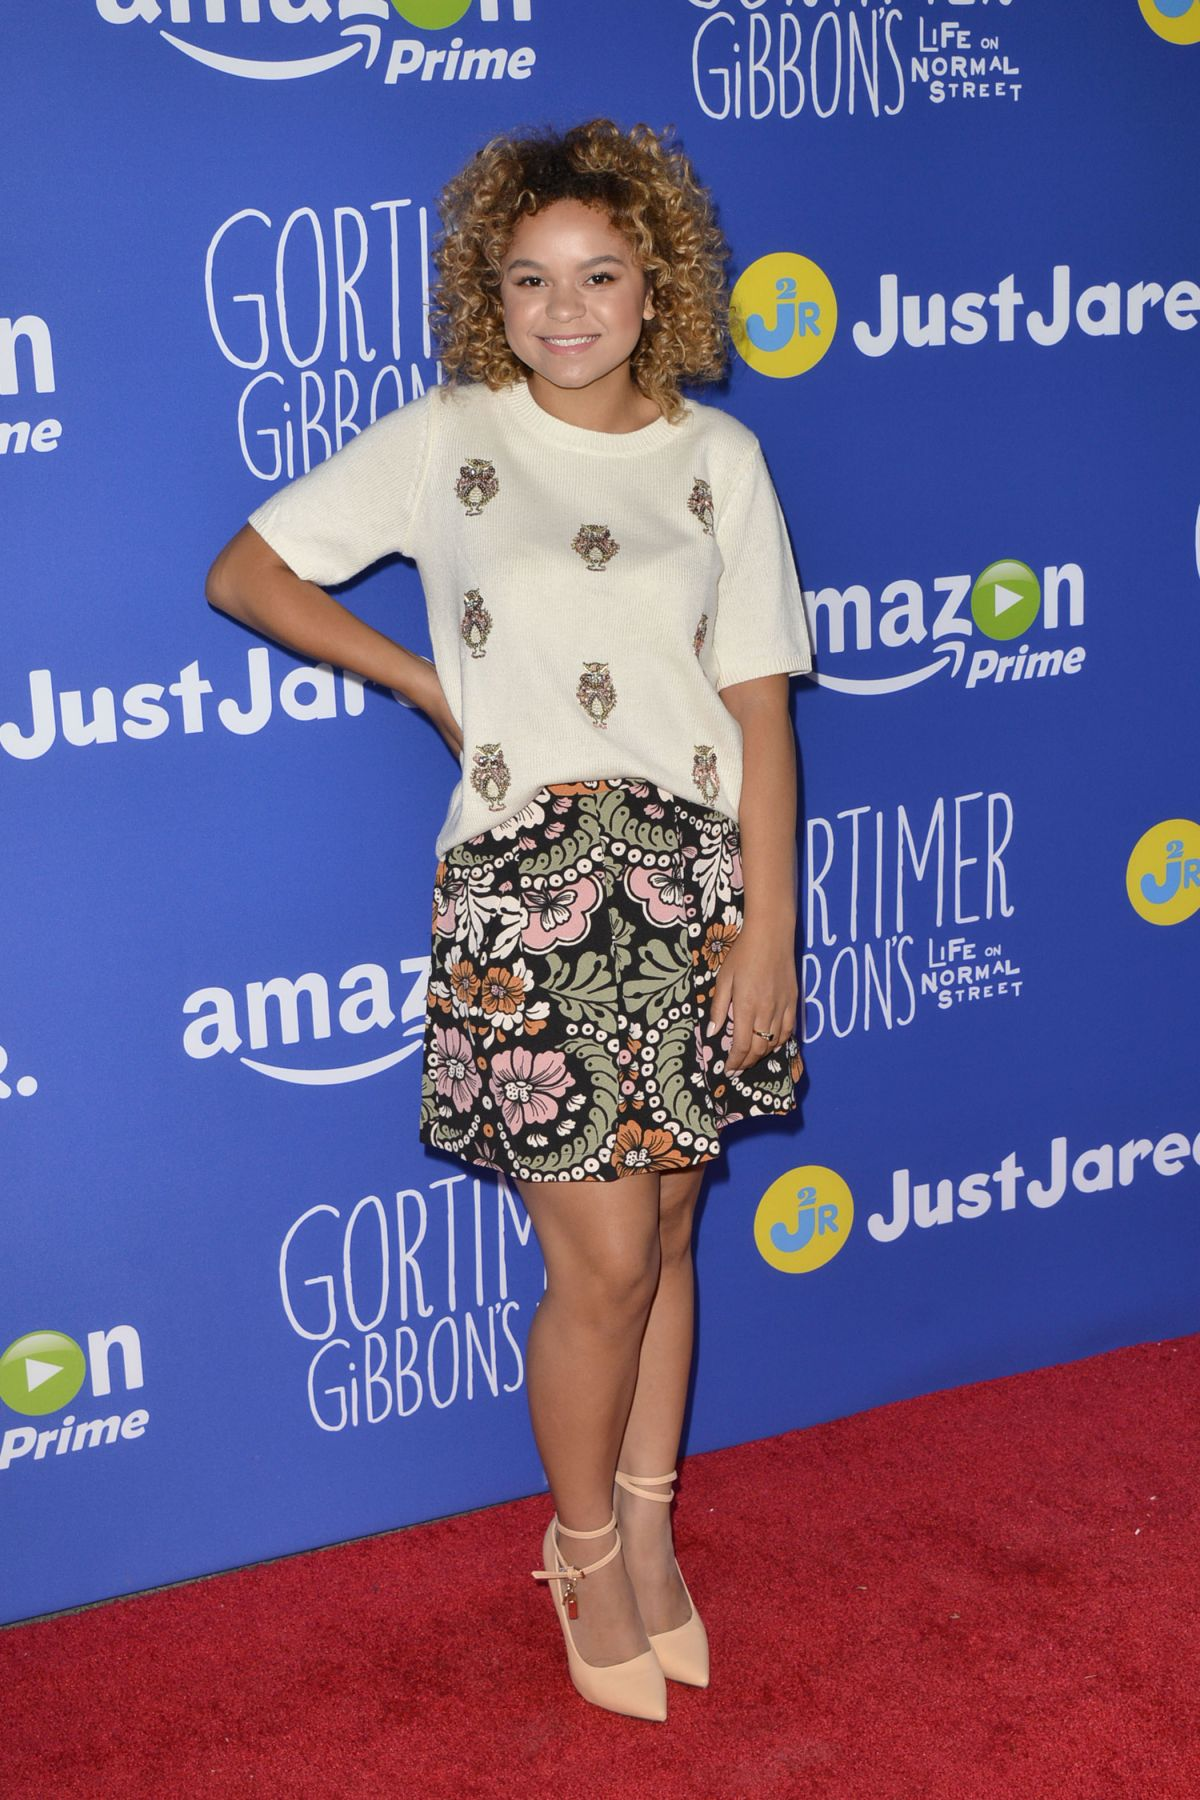 RACHEL CROW at Just Jared Fall Fun Day in Los Angeles 10/24/2015